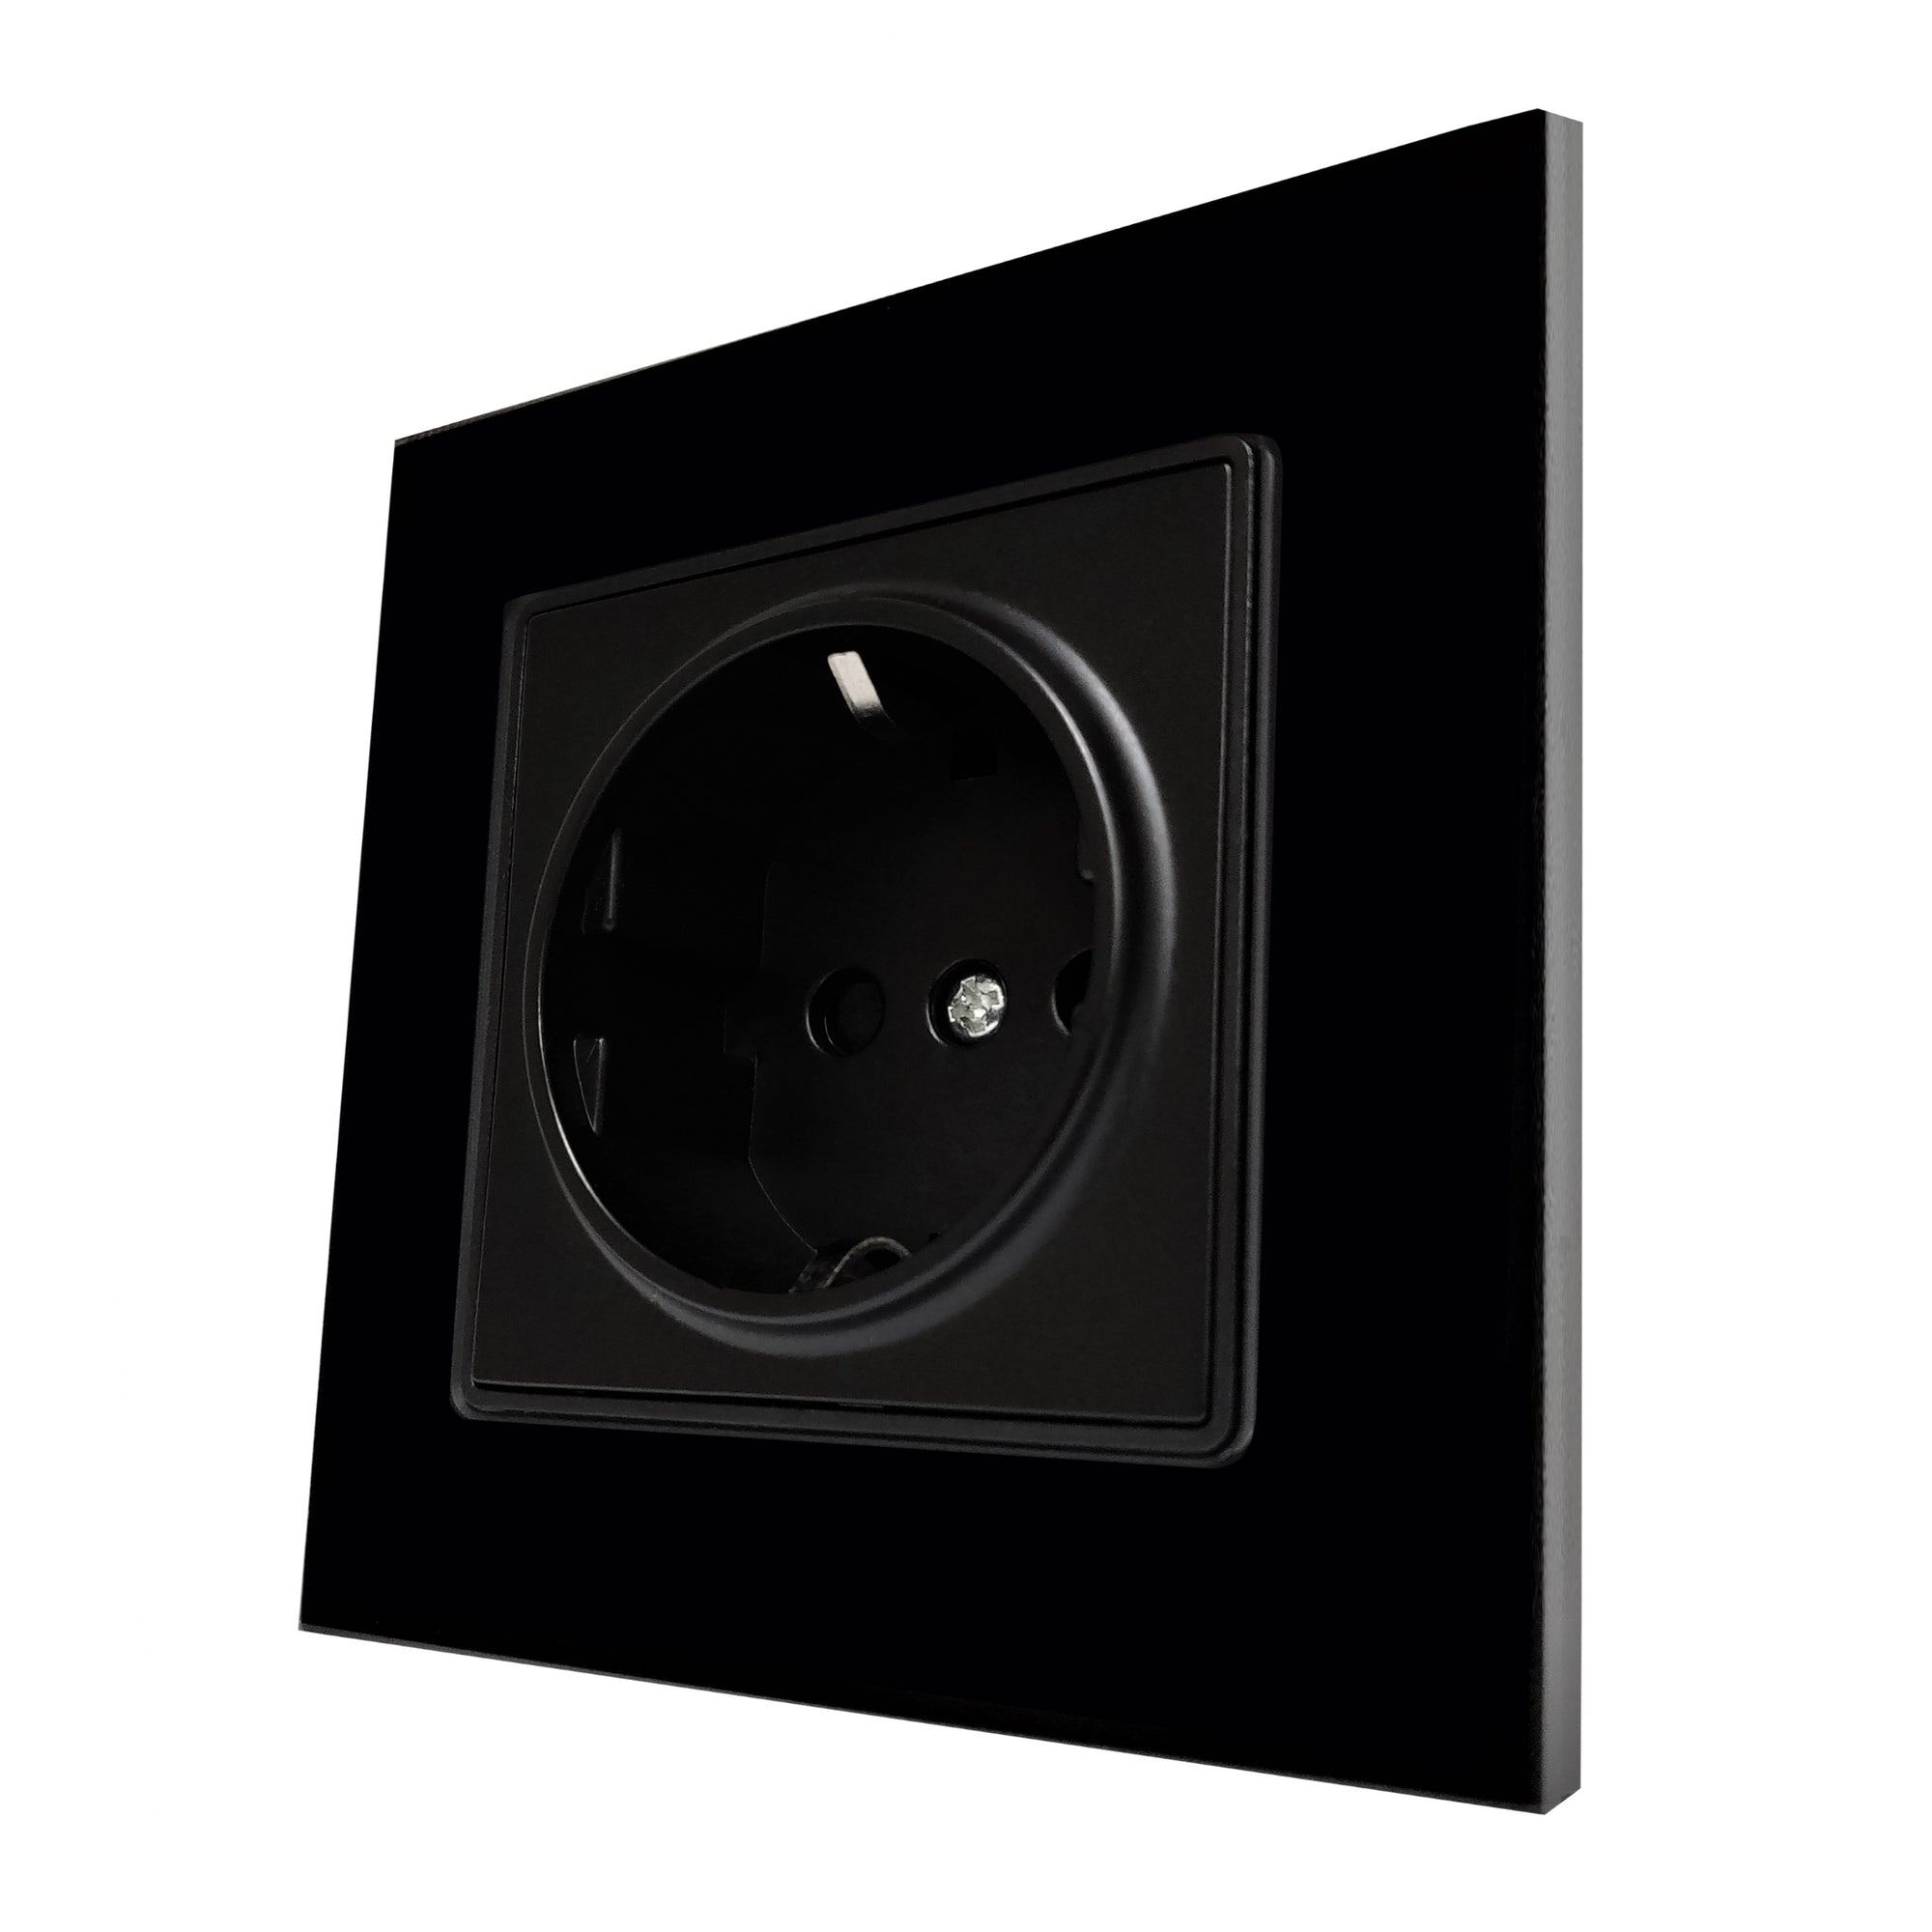 Single Schuko EU 16A 2-Pin AC Wall Power Socket in Black Glass Frame & Black Centre